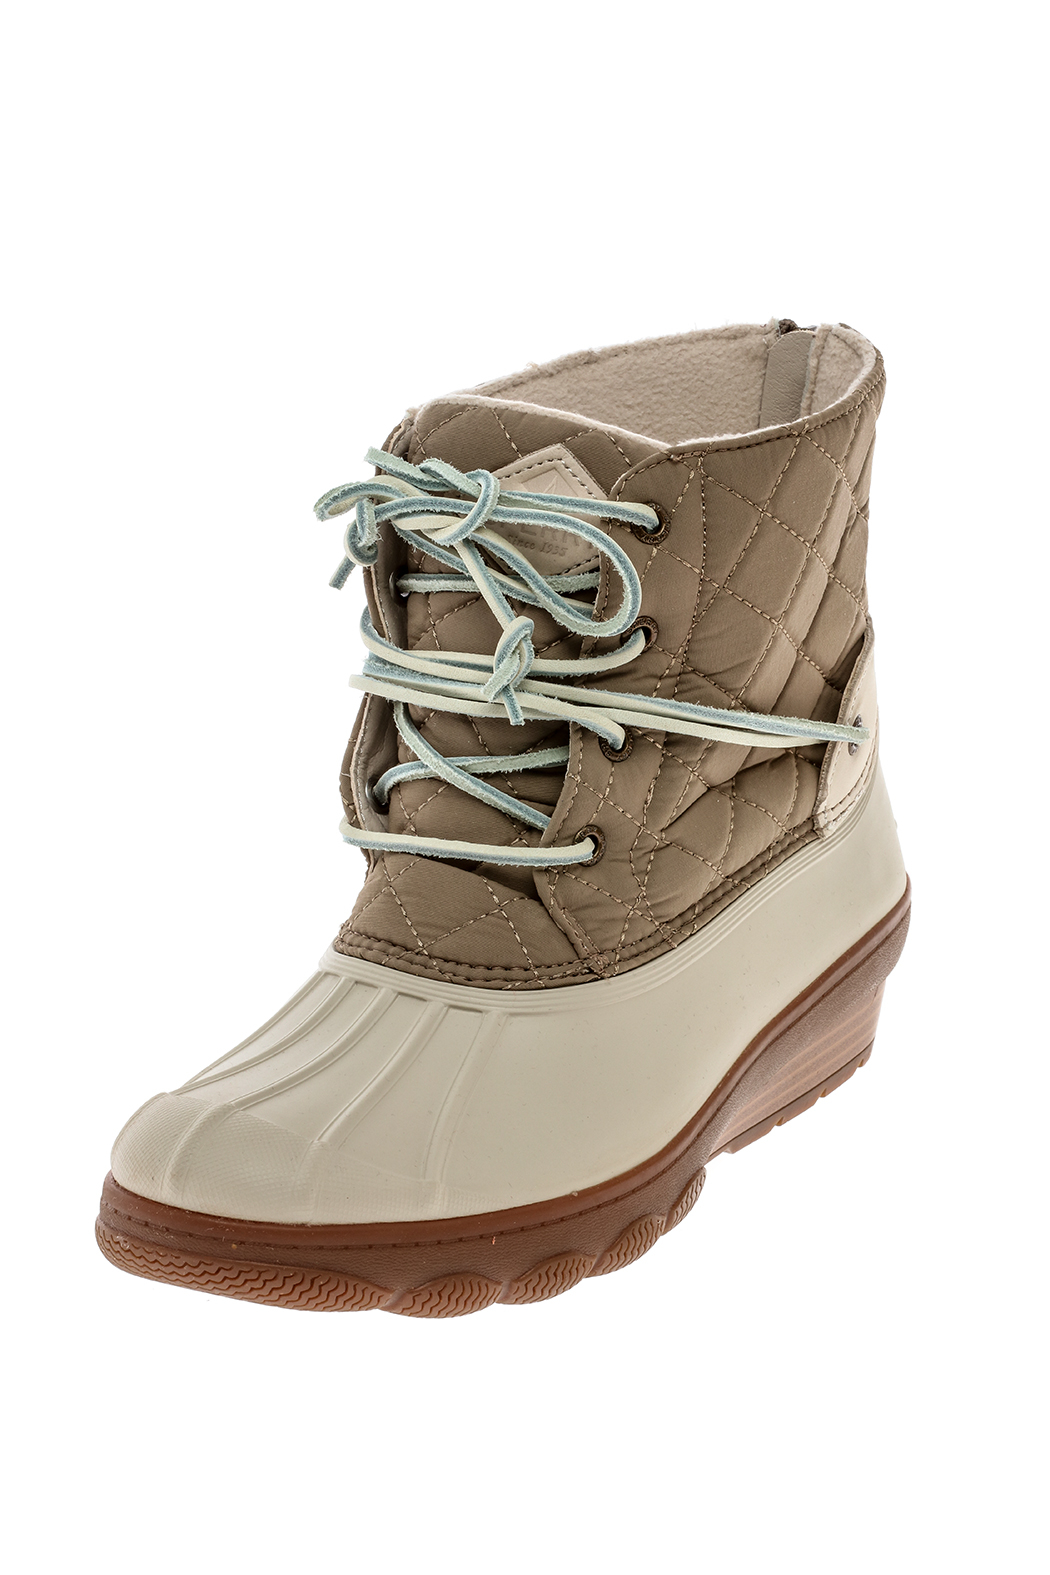 Sperry Saltwater Duck Boots - Main Image